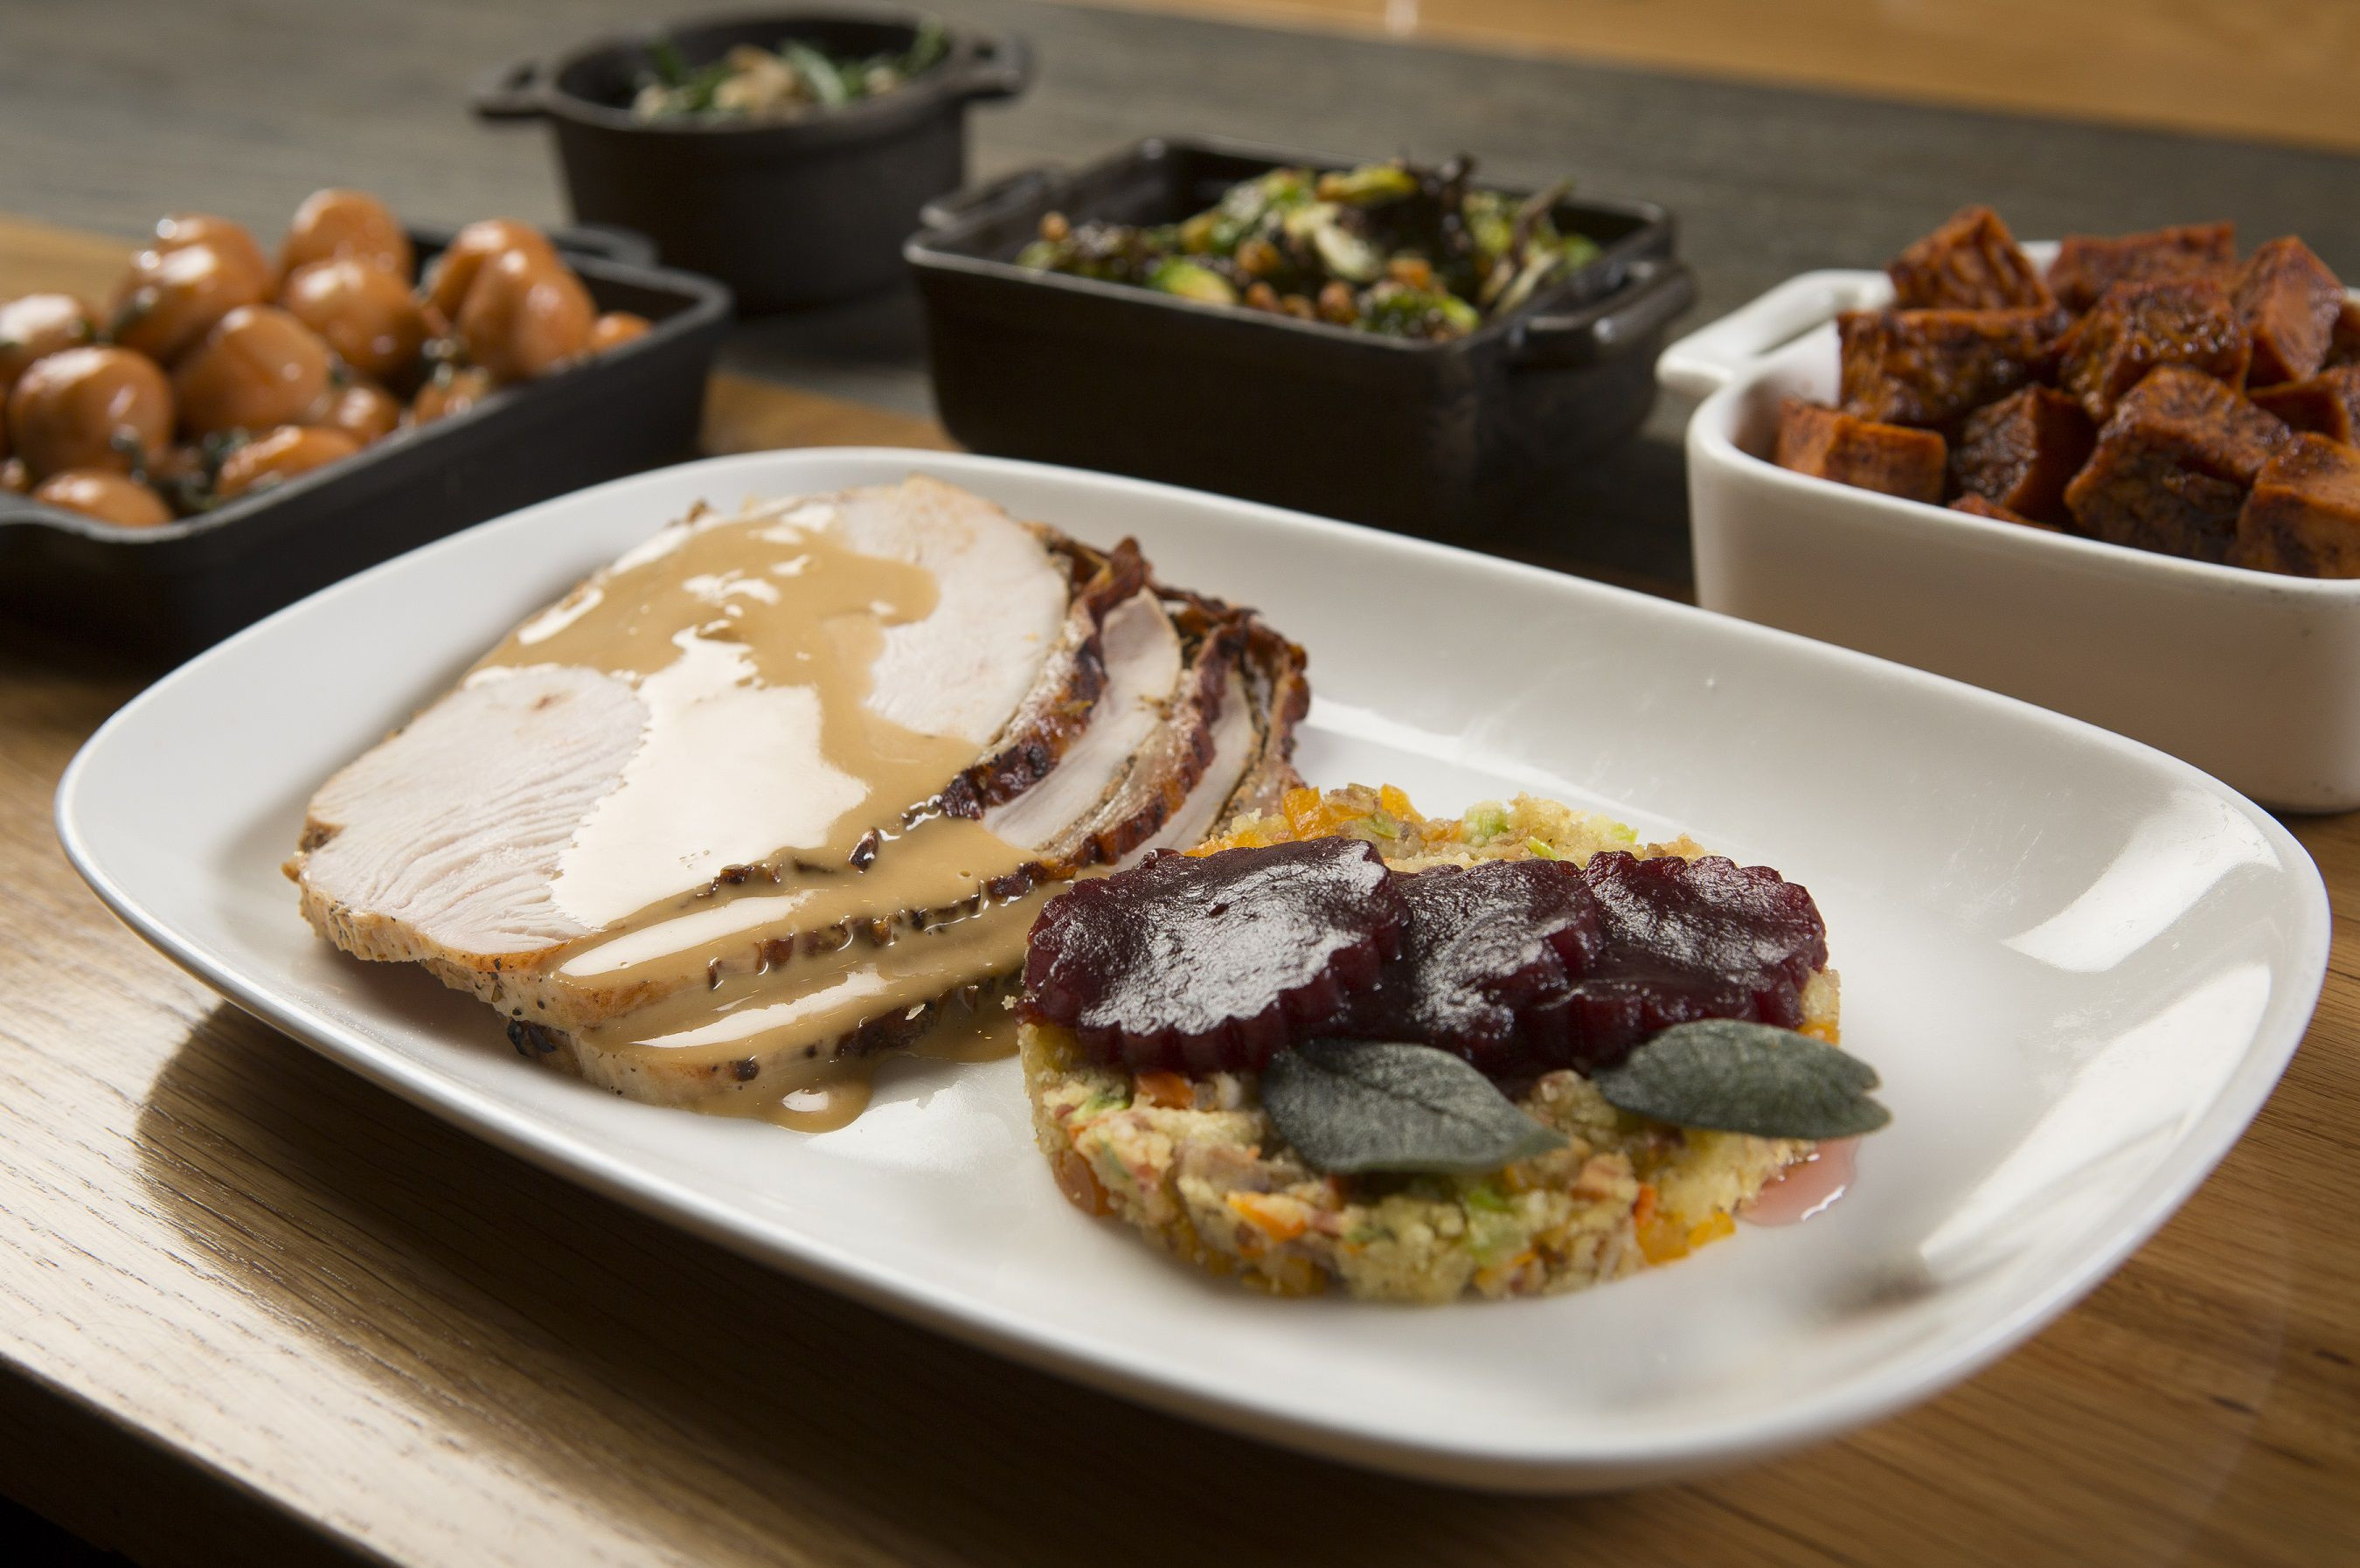 Thanksgiving Dinner Las Vegas  Las Vegas Dining 101 A Guide for Eating and Drinking in